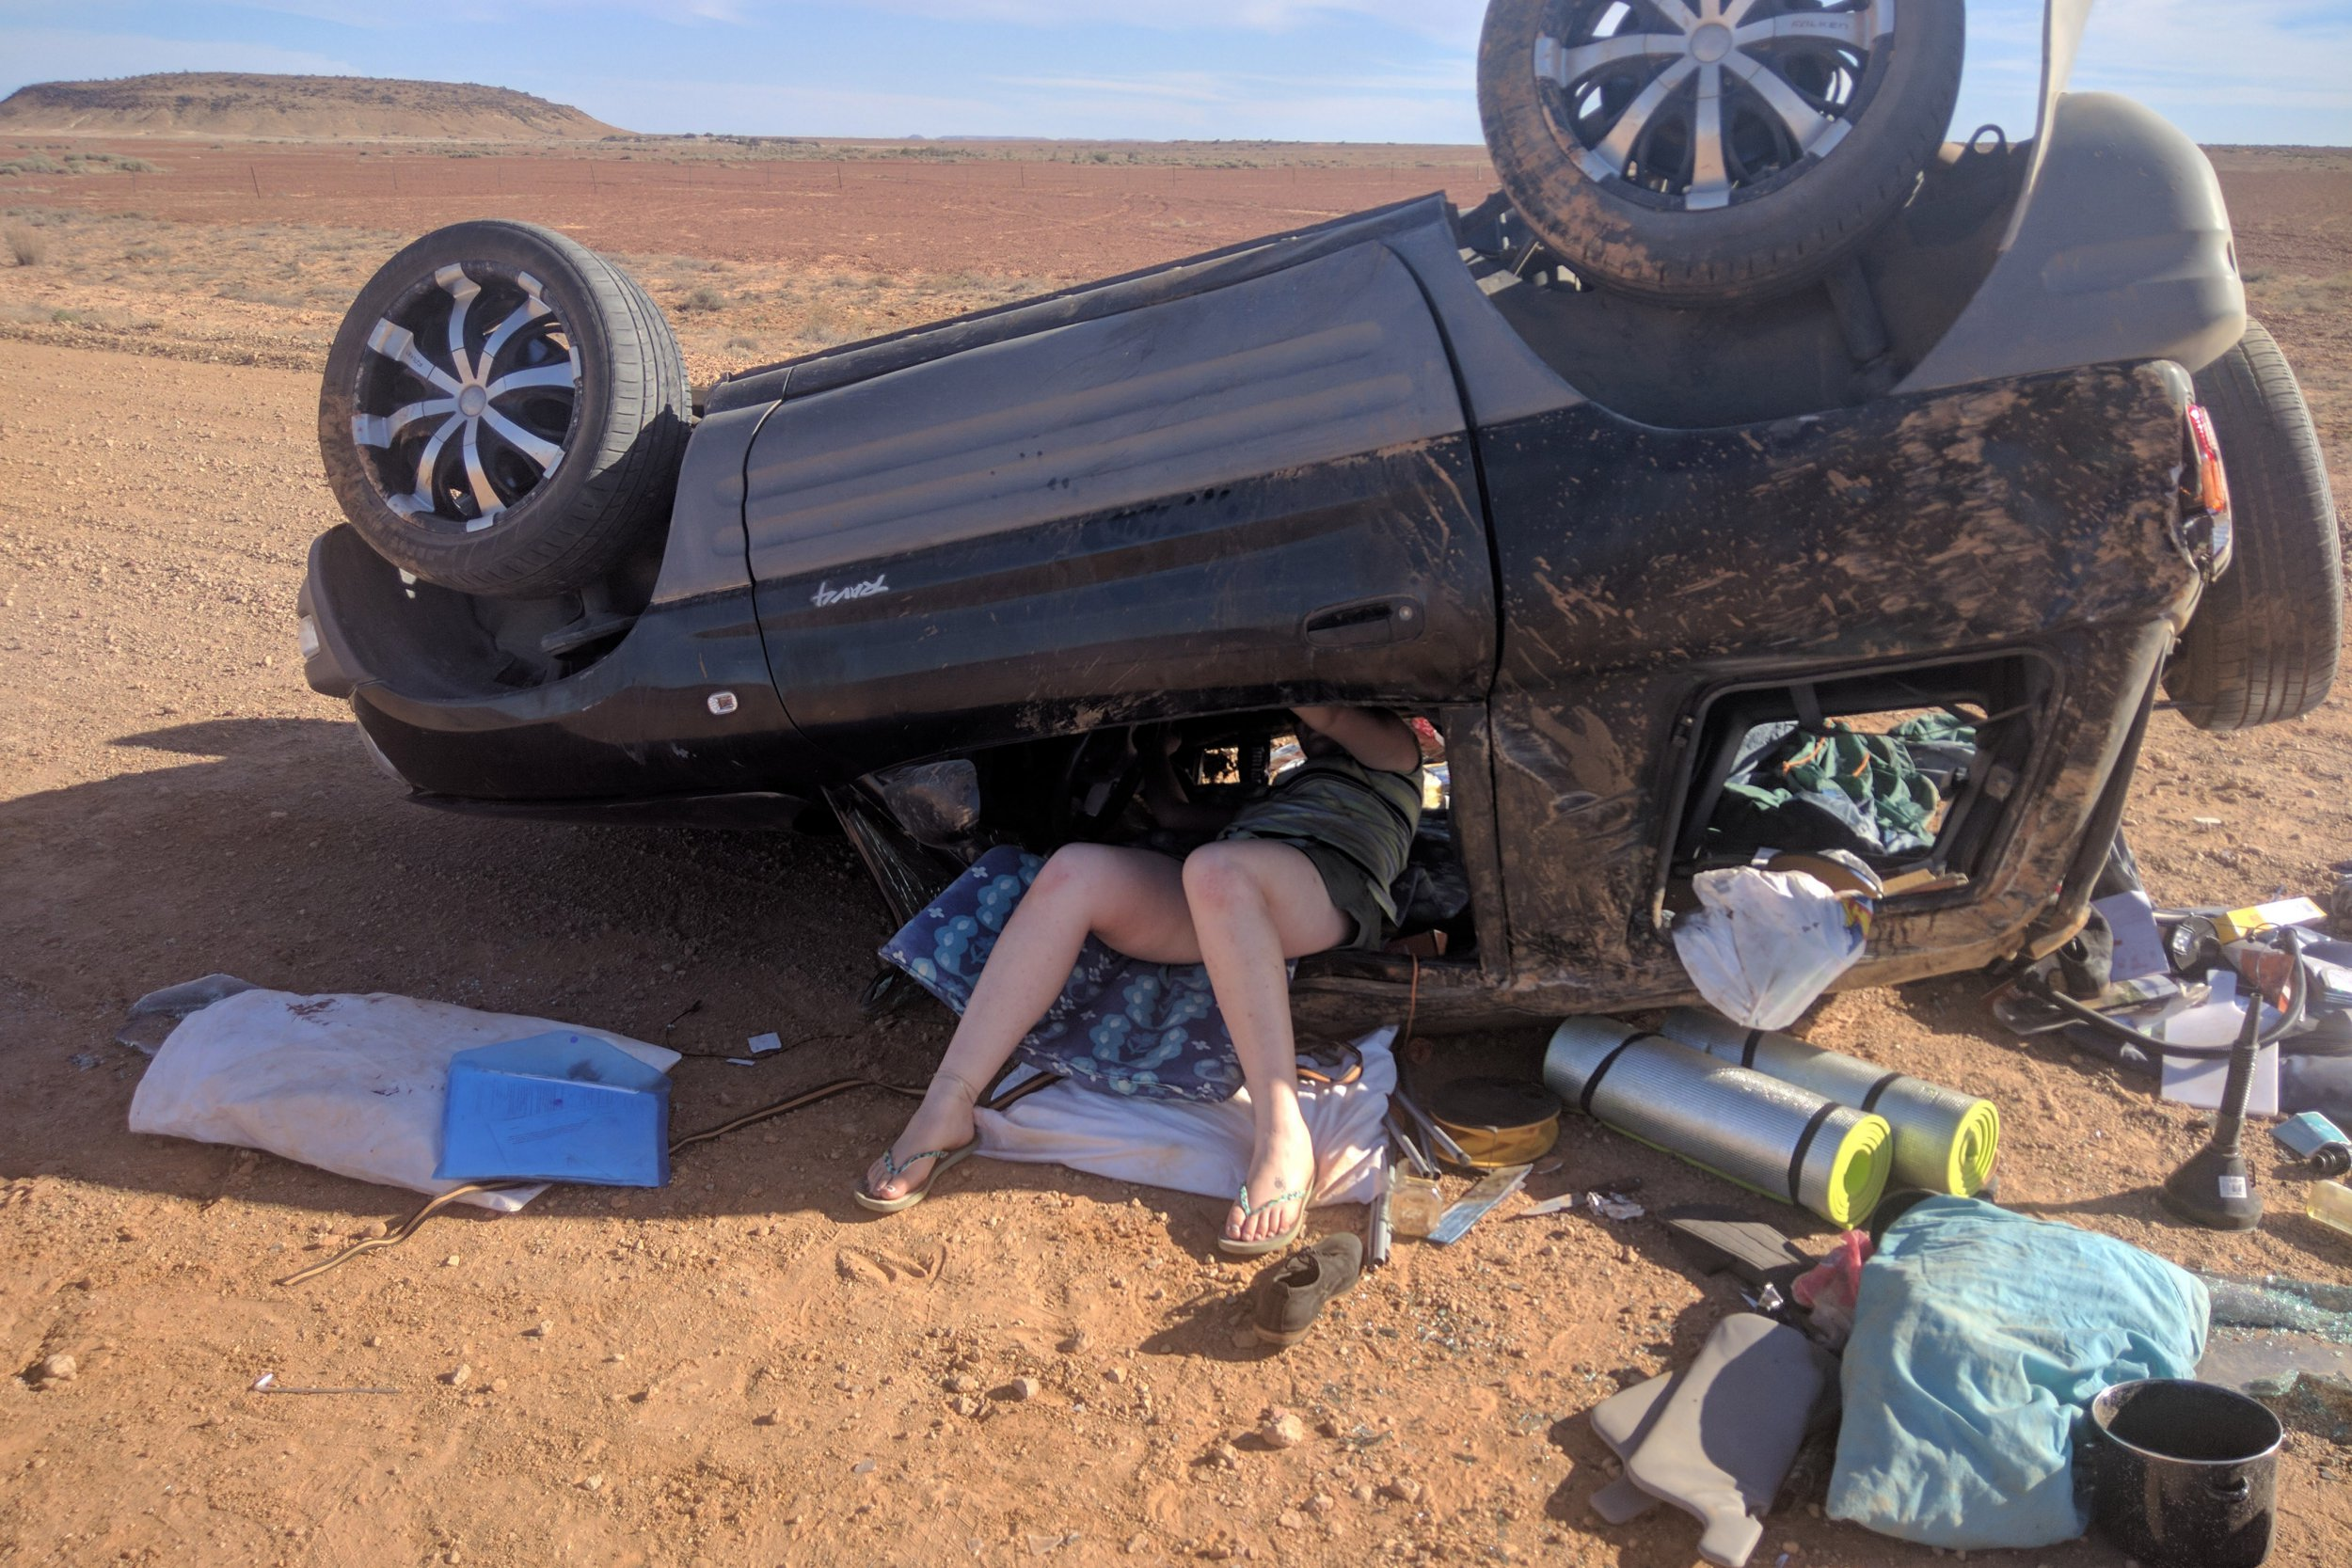 Pics from Brad Warren / Caters News - (PICTURED: Brad is rated at the scene in the upturned car.) What was meant to be a dream holiday for a pair of British backpackers turned into a nightmare when they rolled their car in the Australian outback. Brad Warren, 21, from Sommerset, and Oliver Walker, 22, from Hampshire, lost control and rolled their Toyota Rav 4 four times in the South Australian desert last week. Oliver was left bloodied and unconscious after he was thrown from the window while Brad, who was behind the wheel, was temporarily half-blinded by a scratch to his eye. The mates, who are on a three-month trip down under for their gap year, were miraculously rescued by a passing couple on the Oodnadatta Track before nightfall. - SEE CATERS COPY